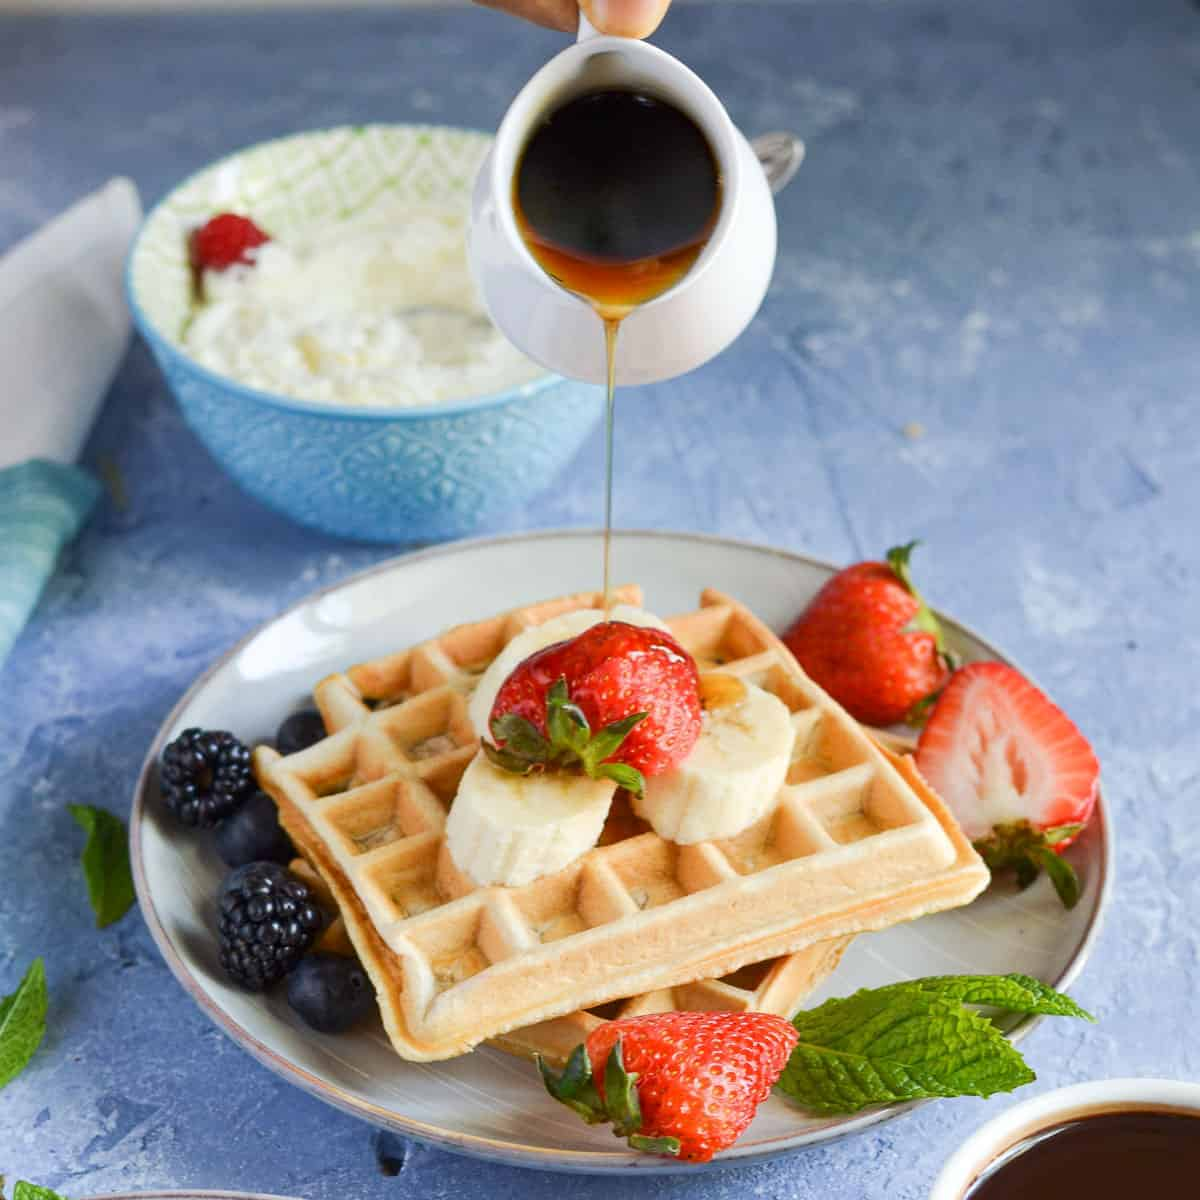 close up click of wheat waffles served with berries, banana and maple syrup.